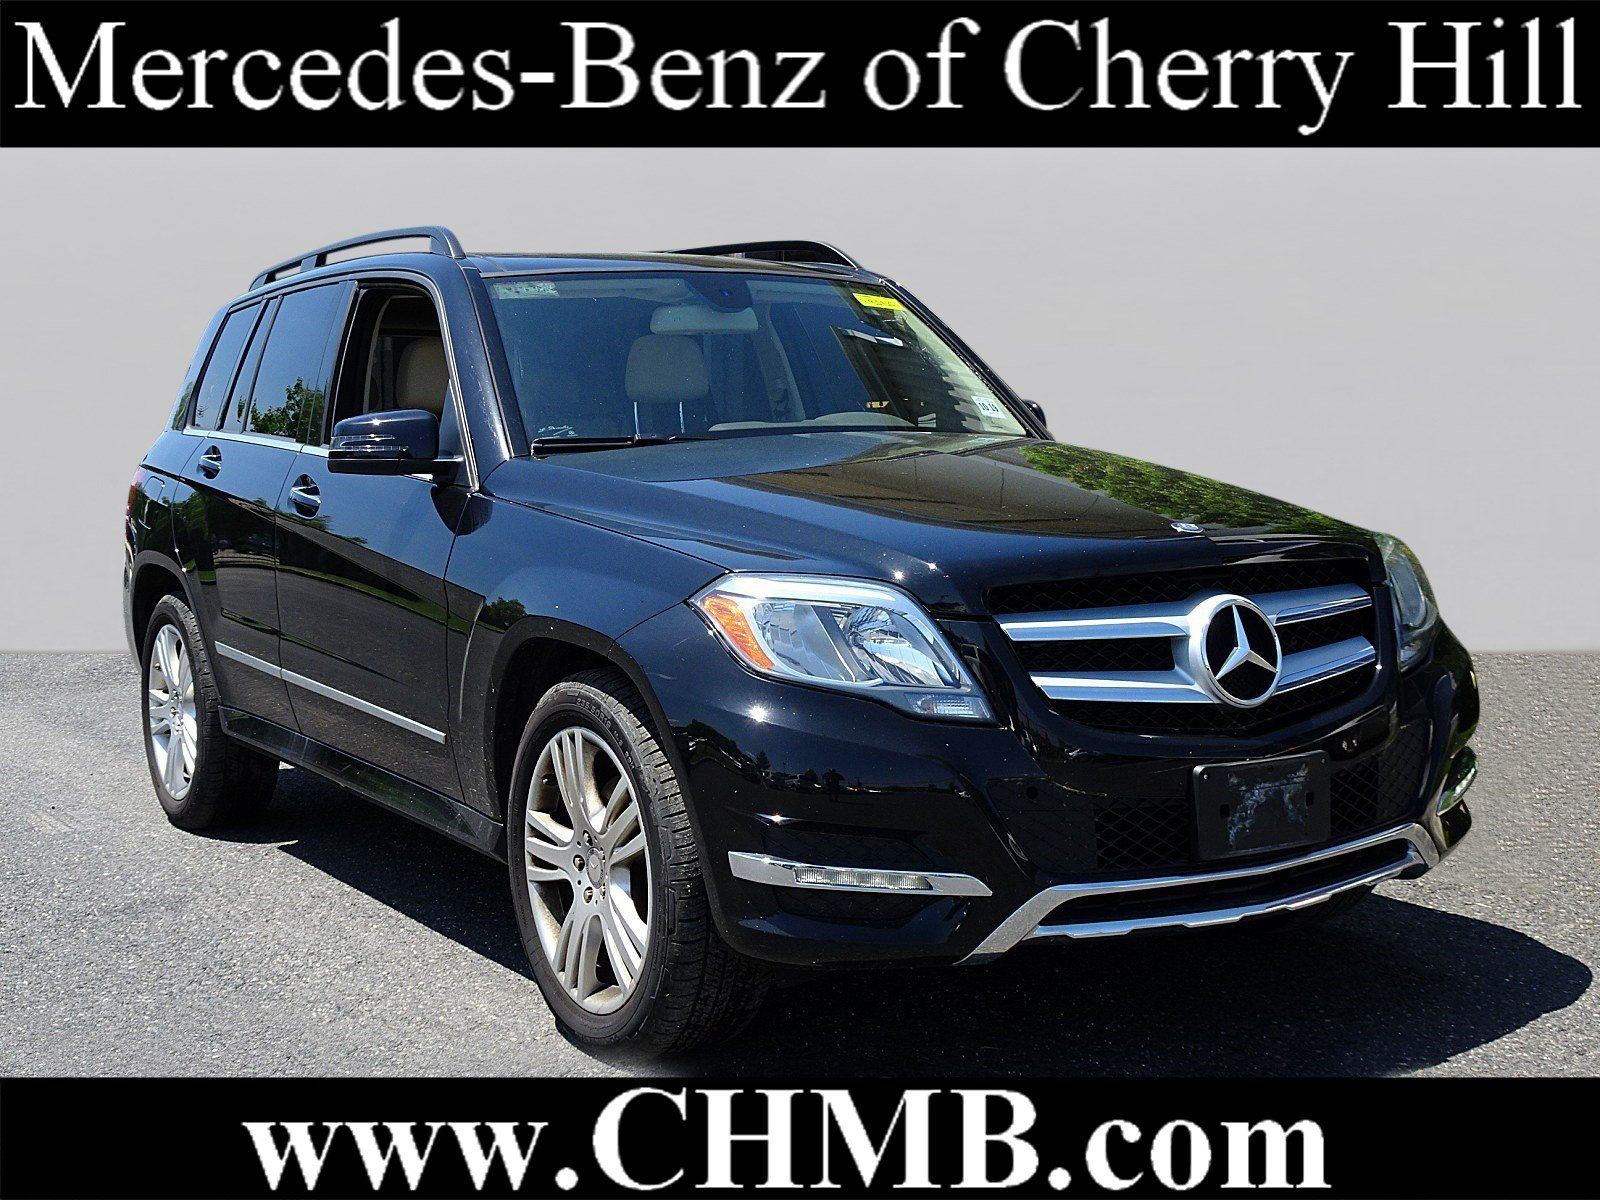 benz gle car en auto mercedes used costa class suv cars trucks d coupe rica